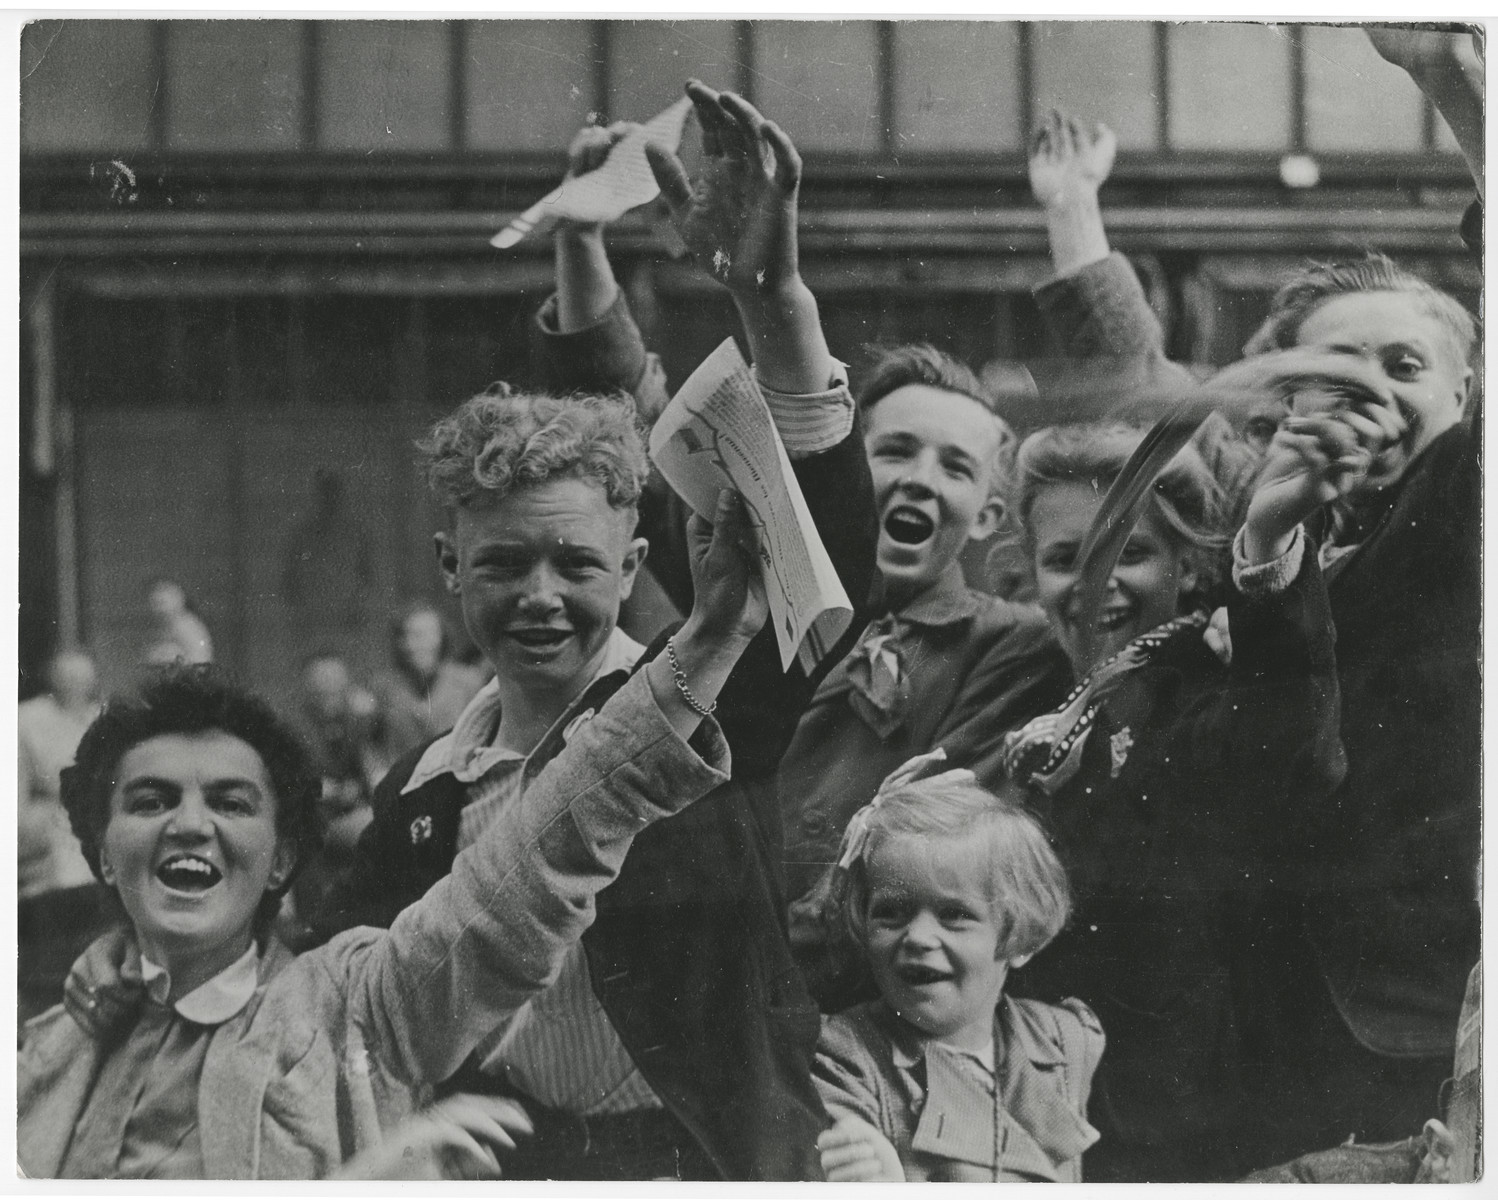 """Dutch citizens celebrate the liberation of Utrecht.  Original caption reads:  """"Crowds celebrating victory in the streets of Utrecht, Holland, are fired on by Nazi fanatics hiding in a building overlooking the parade.  After a sharp skirmish, the Germans were captured by Dutch patriots and the celebration was resumed.  Here, as the Nazis open fire on the victory crowds, Dutch patriots go into action""""."""